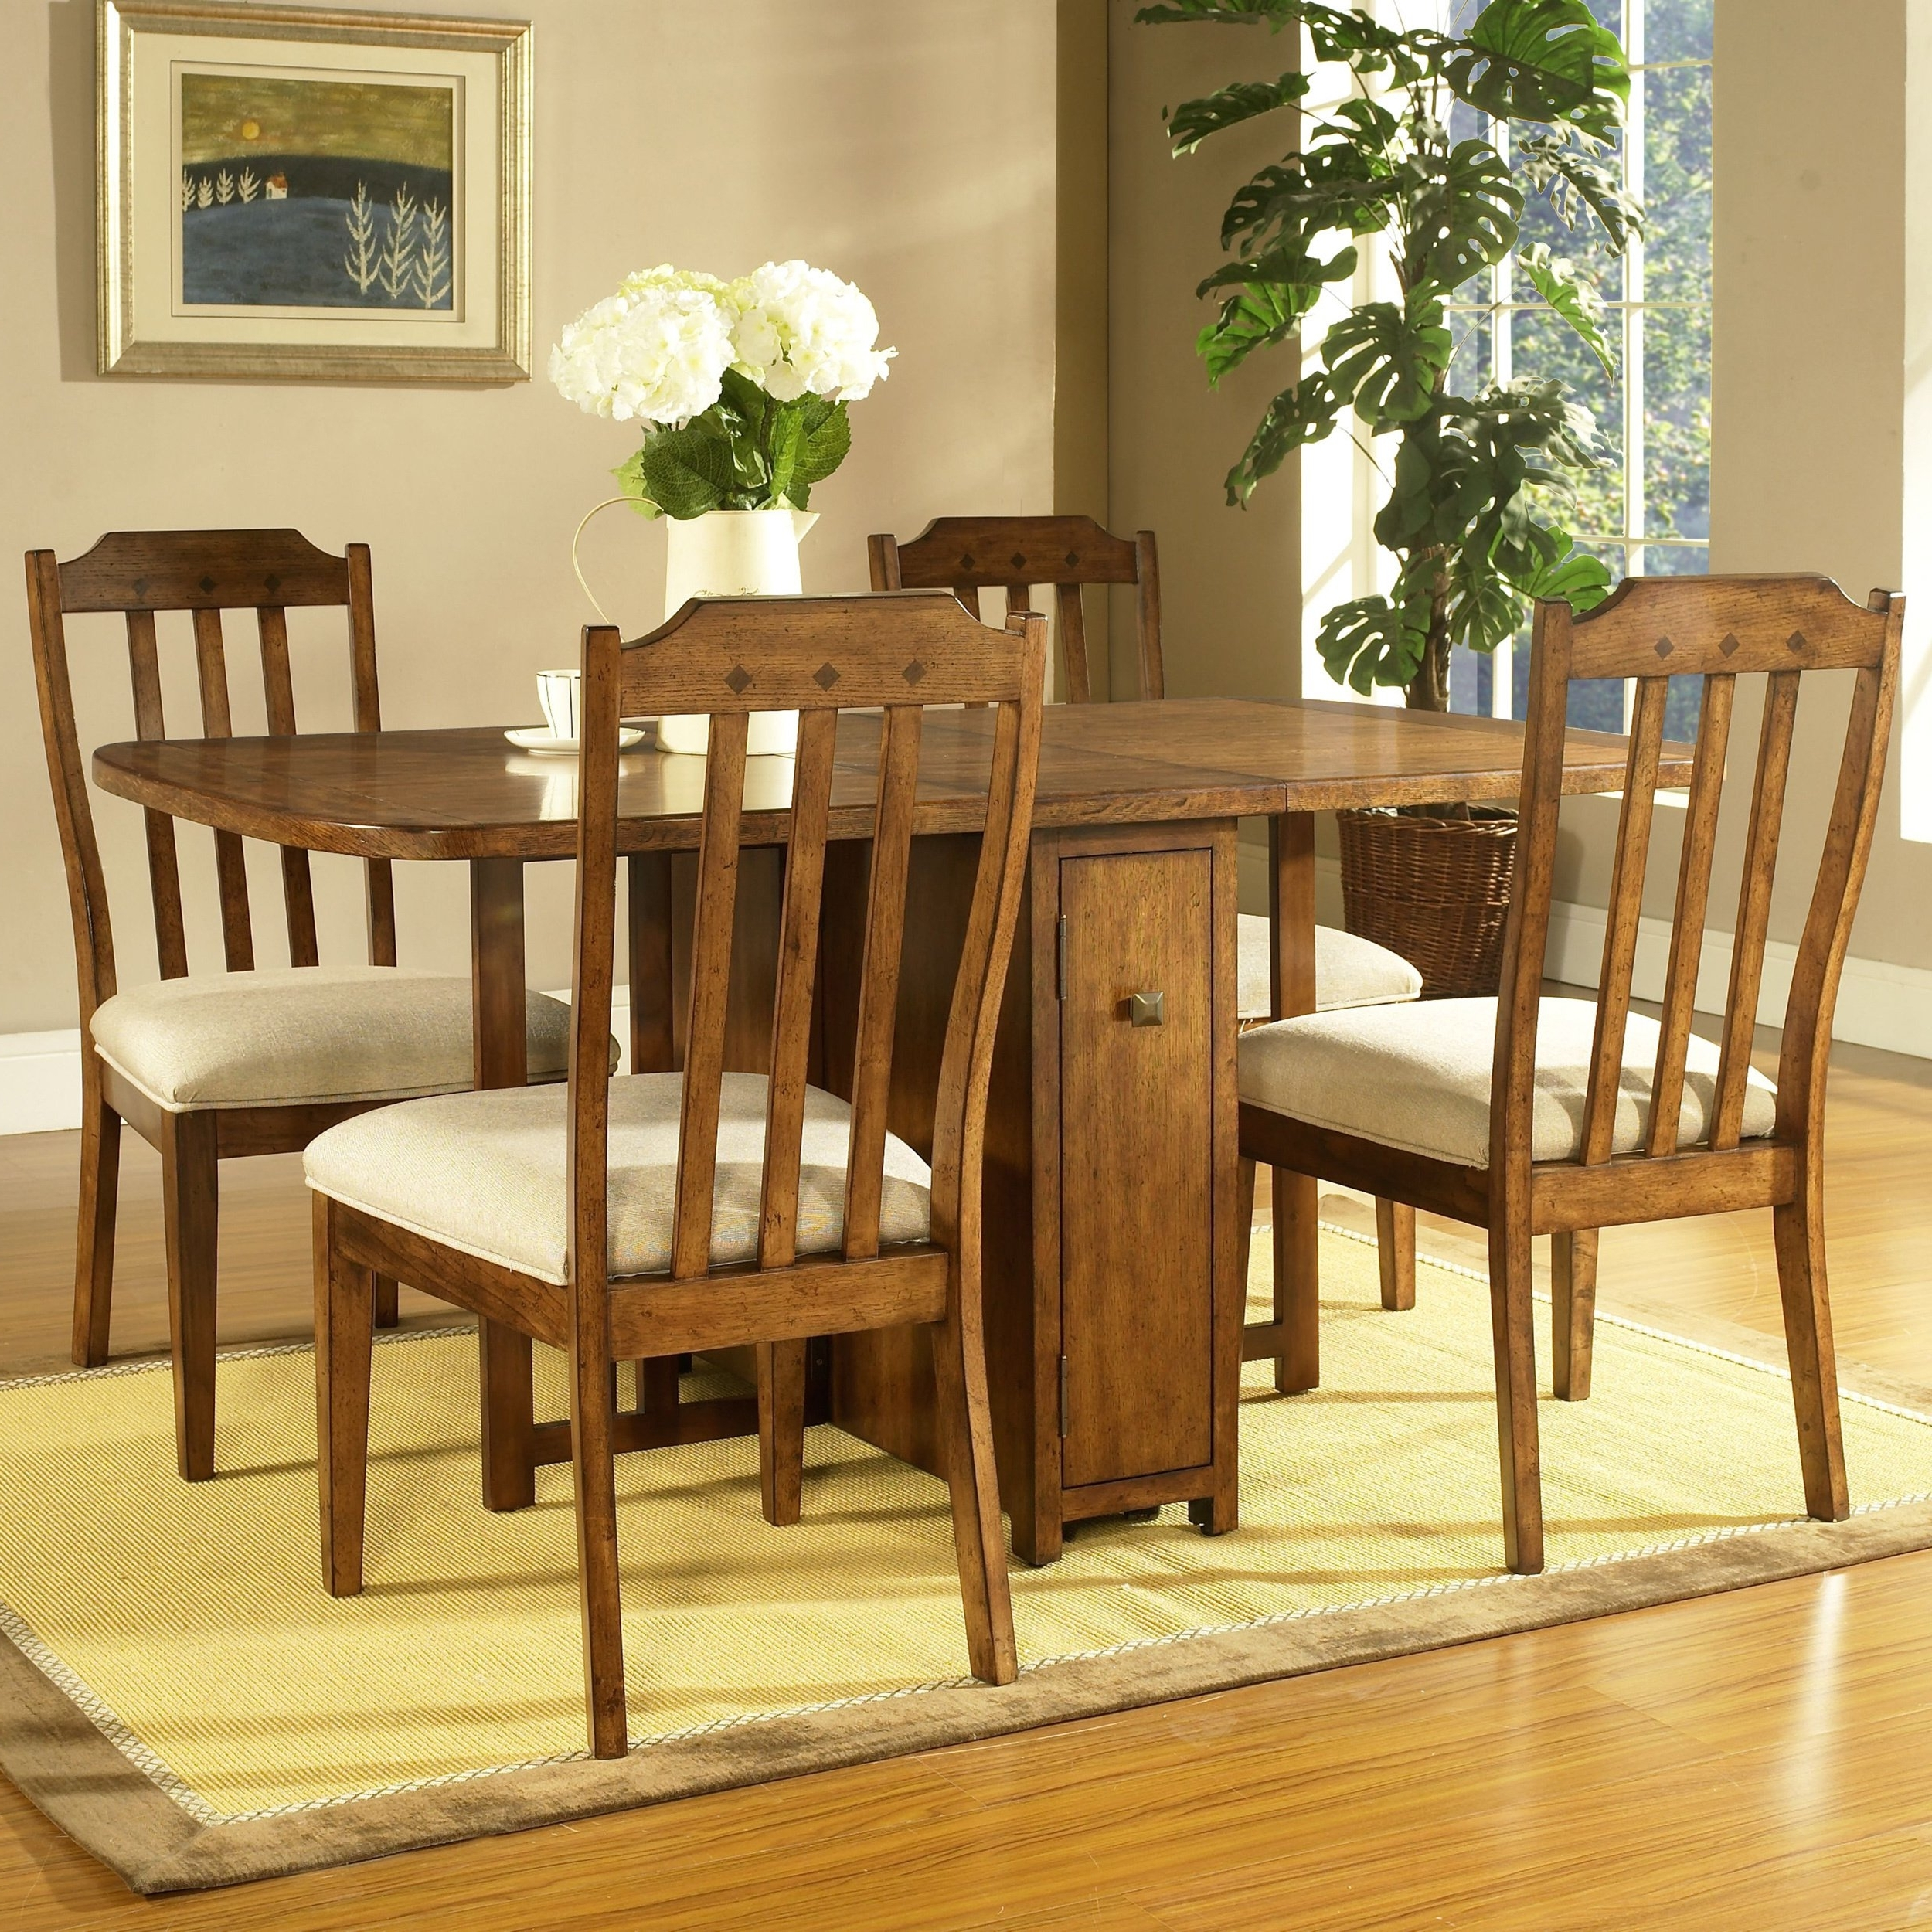 Well Known Shop Somerton Dwelling Craftsman 5 Piece Gate Leg Dining Set – Free Inside Craftsman 7 Piece Rectangle Extension Dining Sets With Arm & Side Chairs (View 23 of 25)